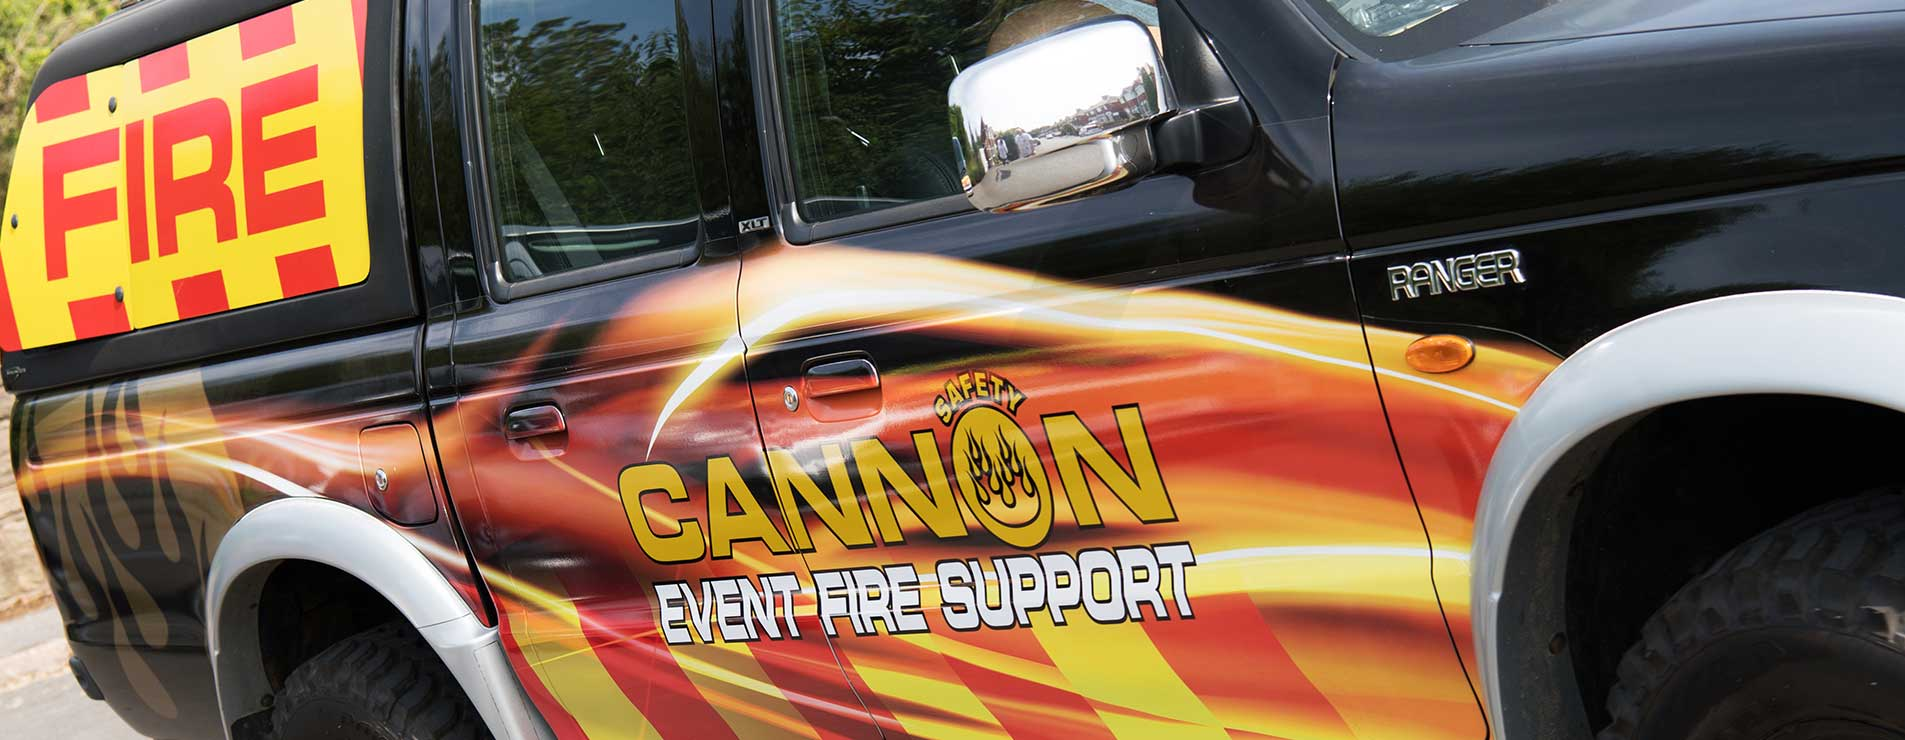 Cannon Safety truck